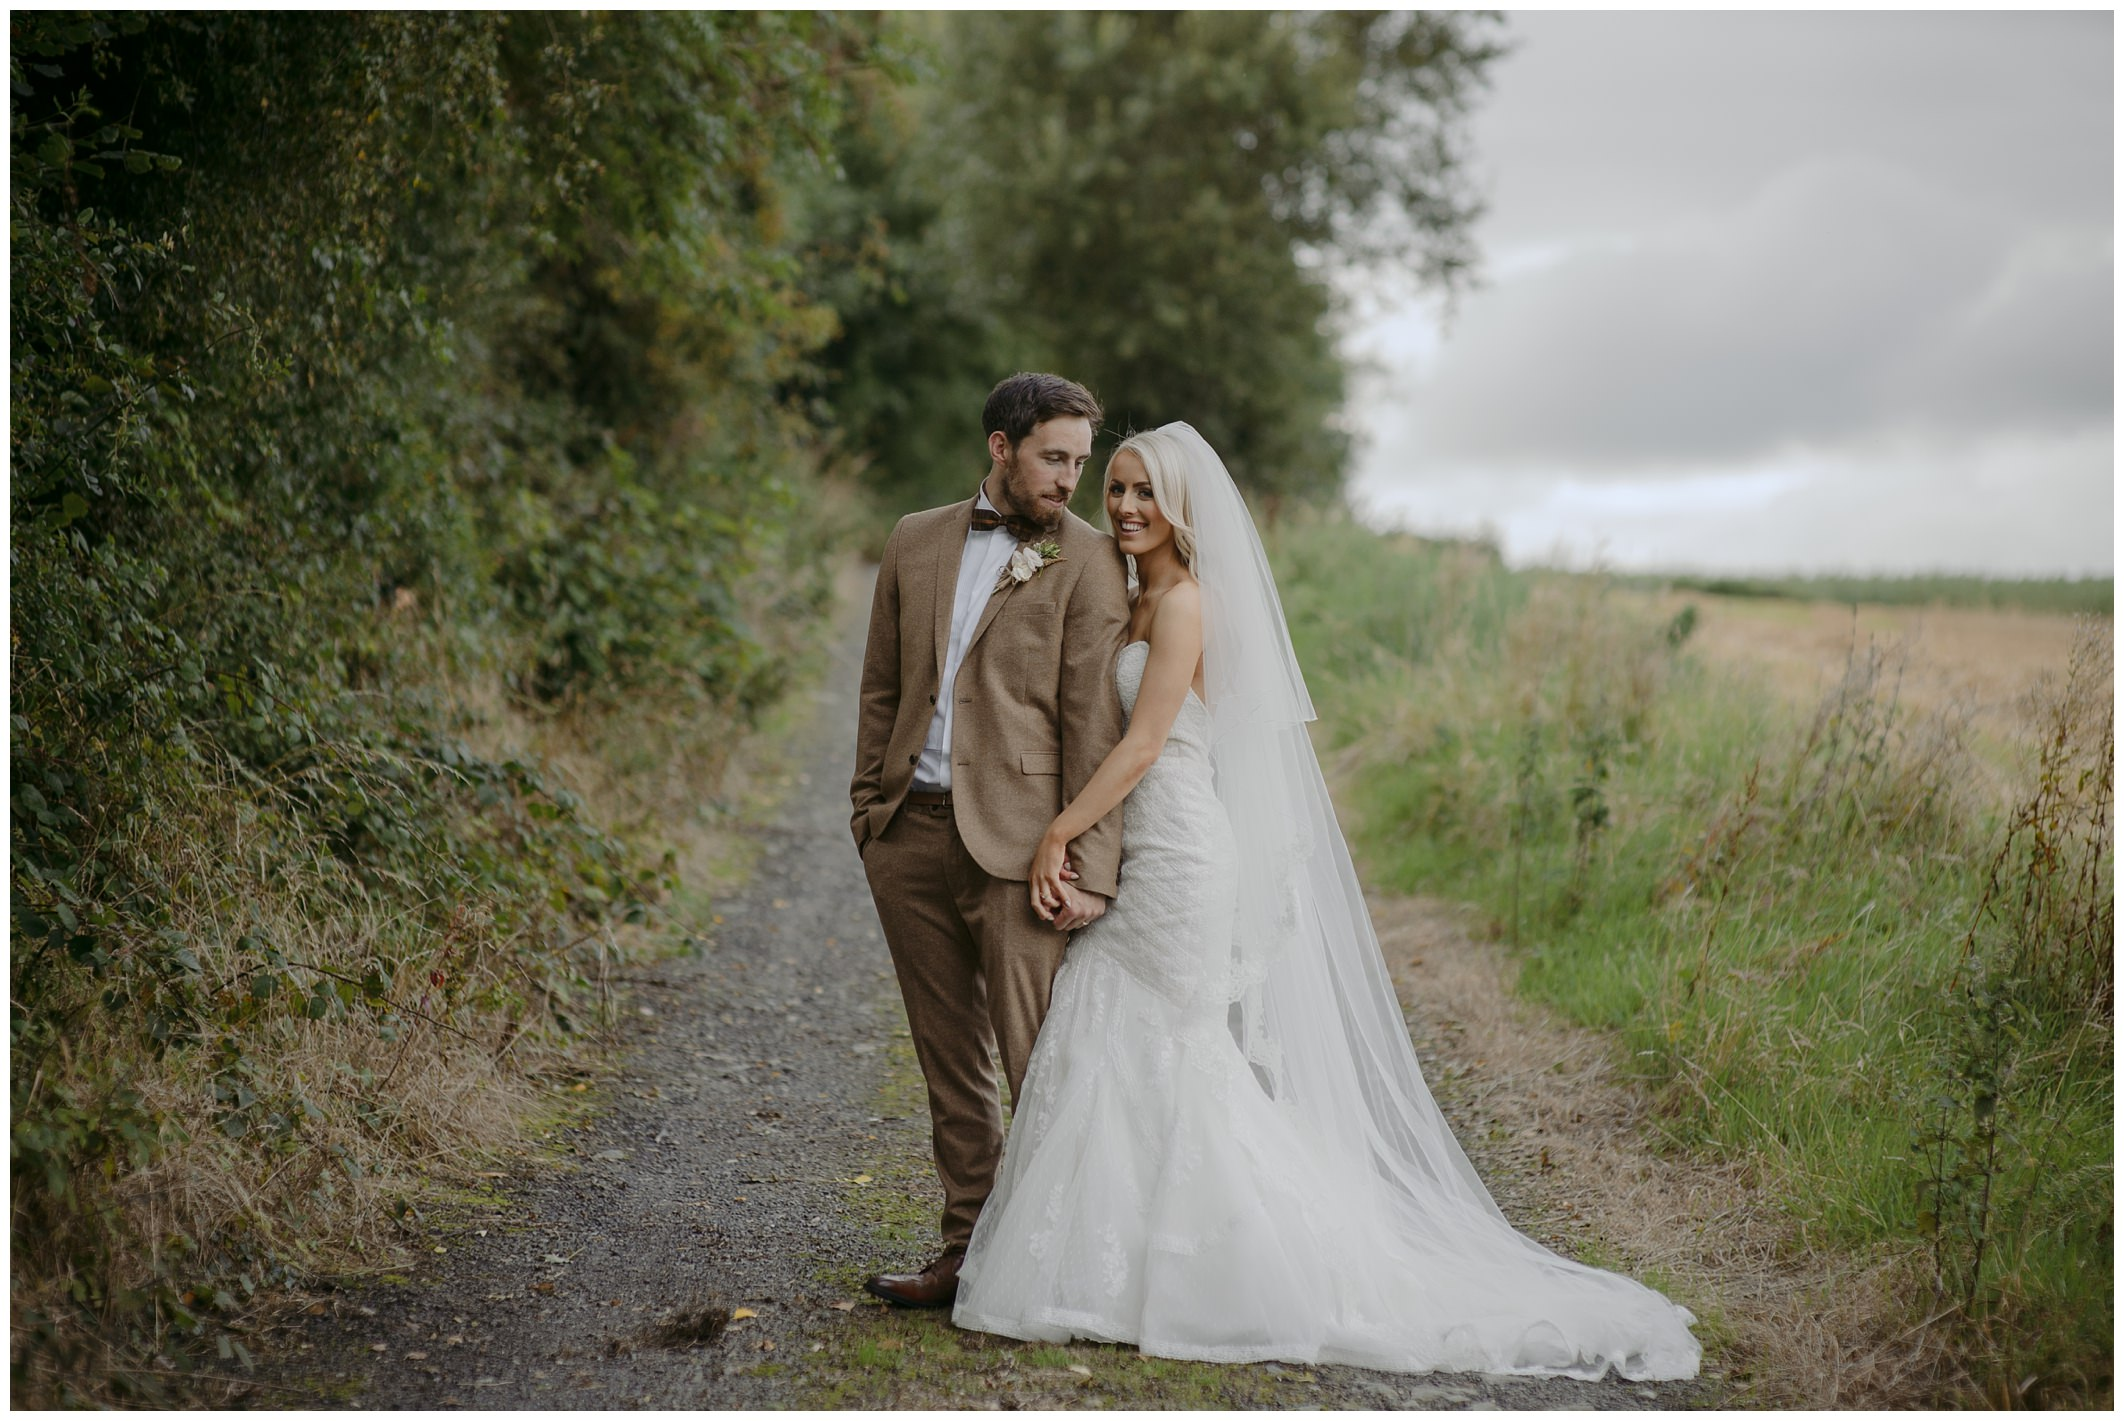 tara_neil_the_mill_alternative_quirky_wedding_jude_browne_photography_0154.jpg